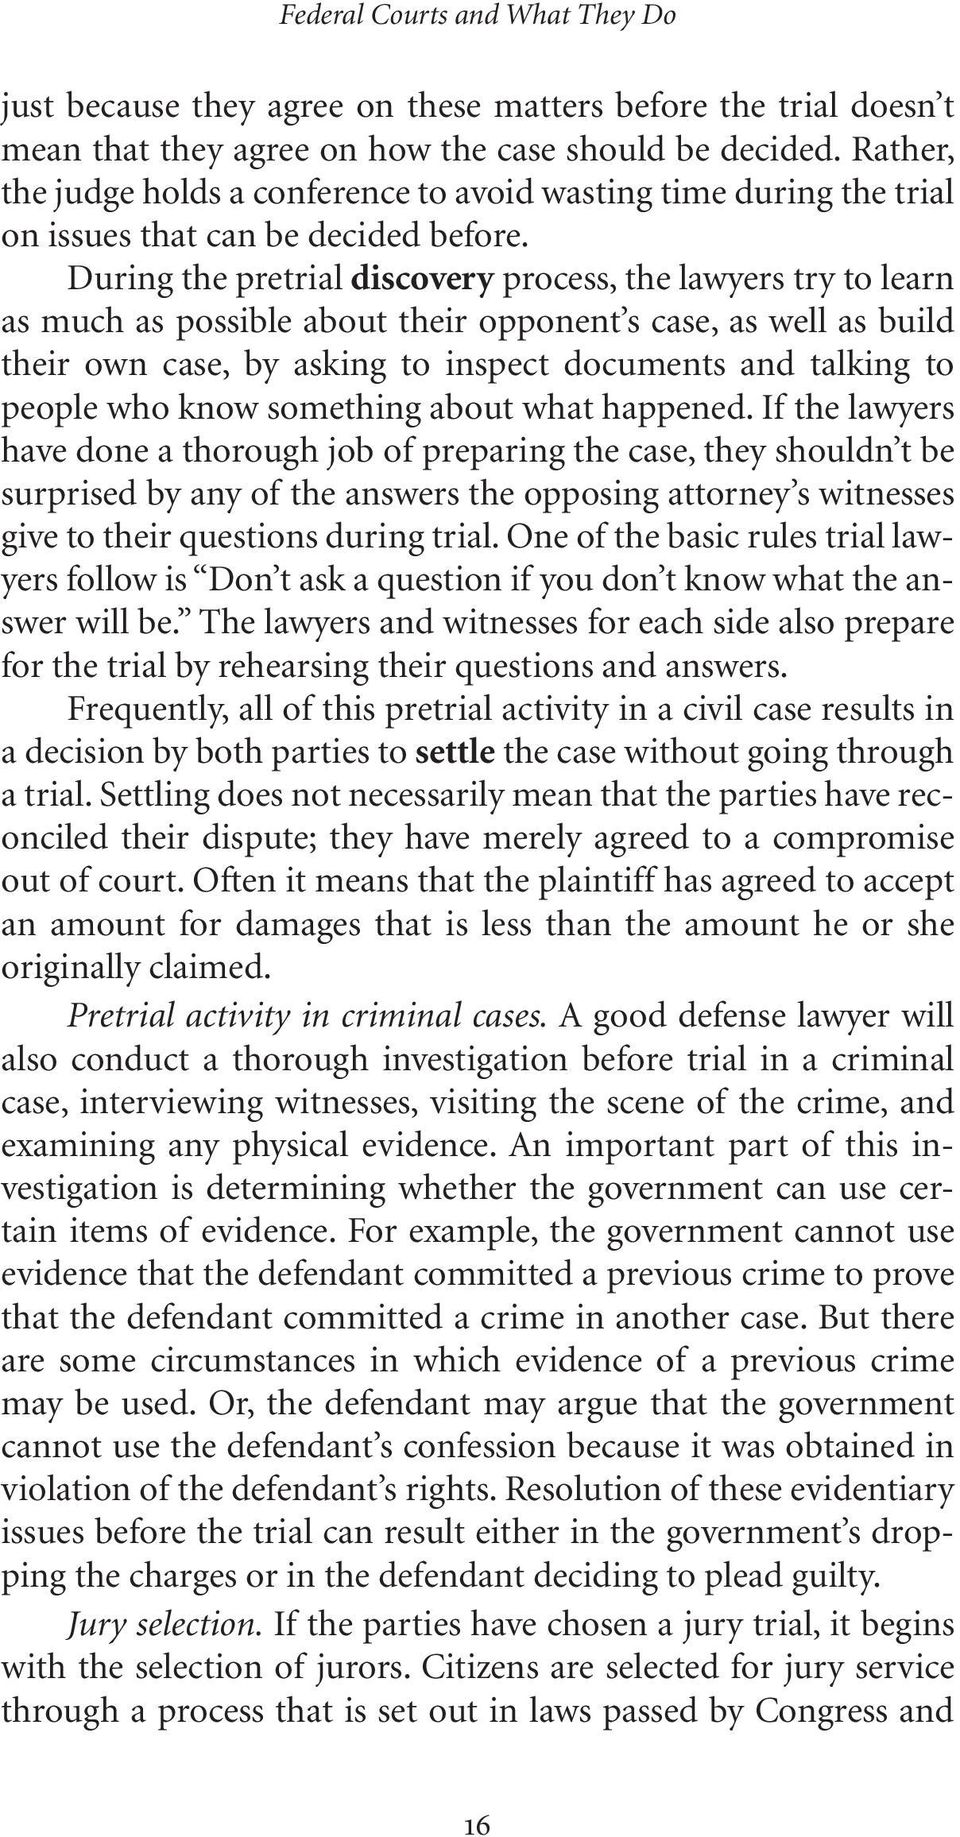 During the pretrial discovery process, the lawyers try to learn as much as possible about their opponent s case, as well as build their own case, by asking to inspect documents and talking to people